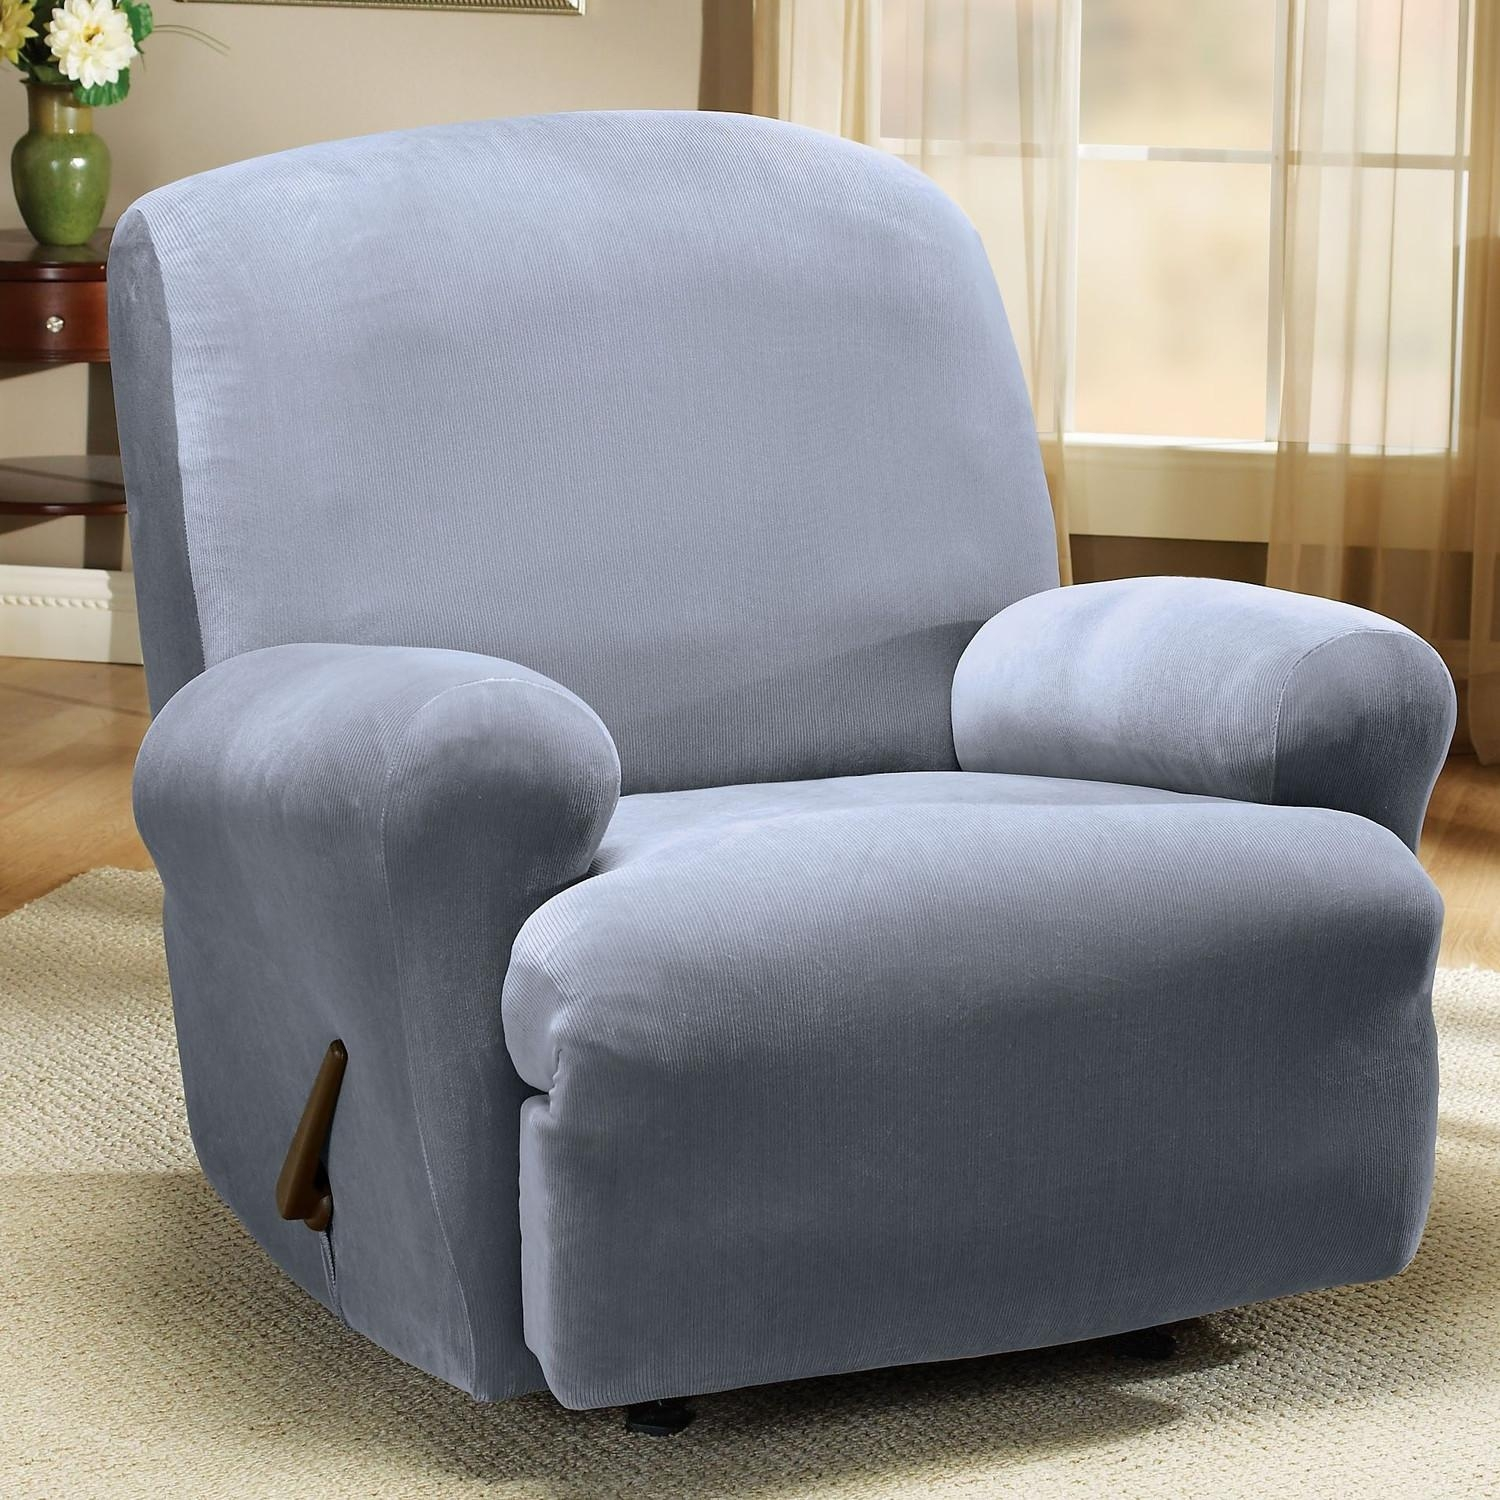 Decorating: Elegant Interior Home Decorating With Comfortable For Stretch Covers For Recliners (Image 5 of 20)